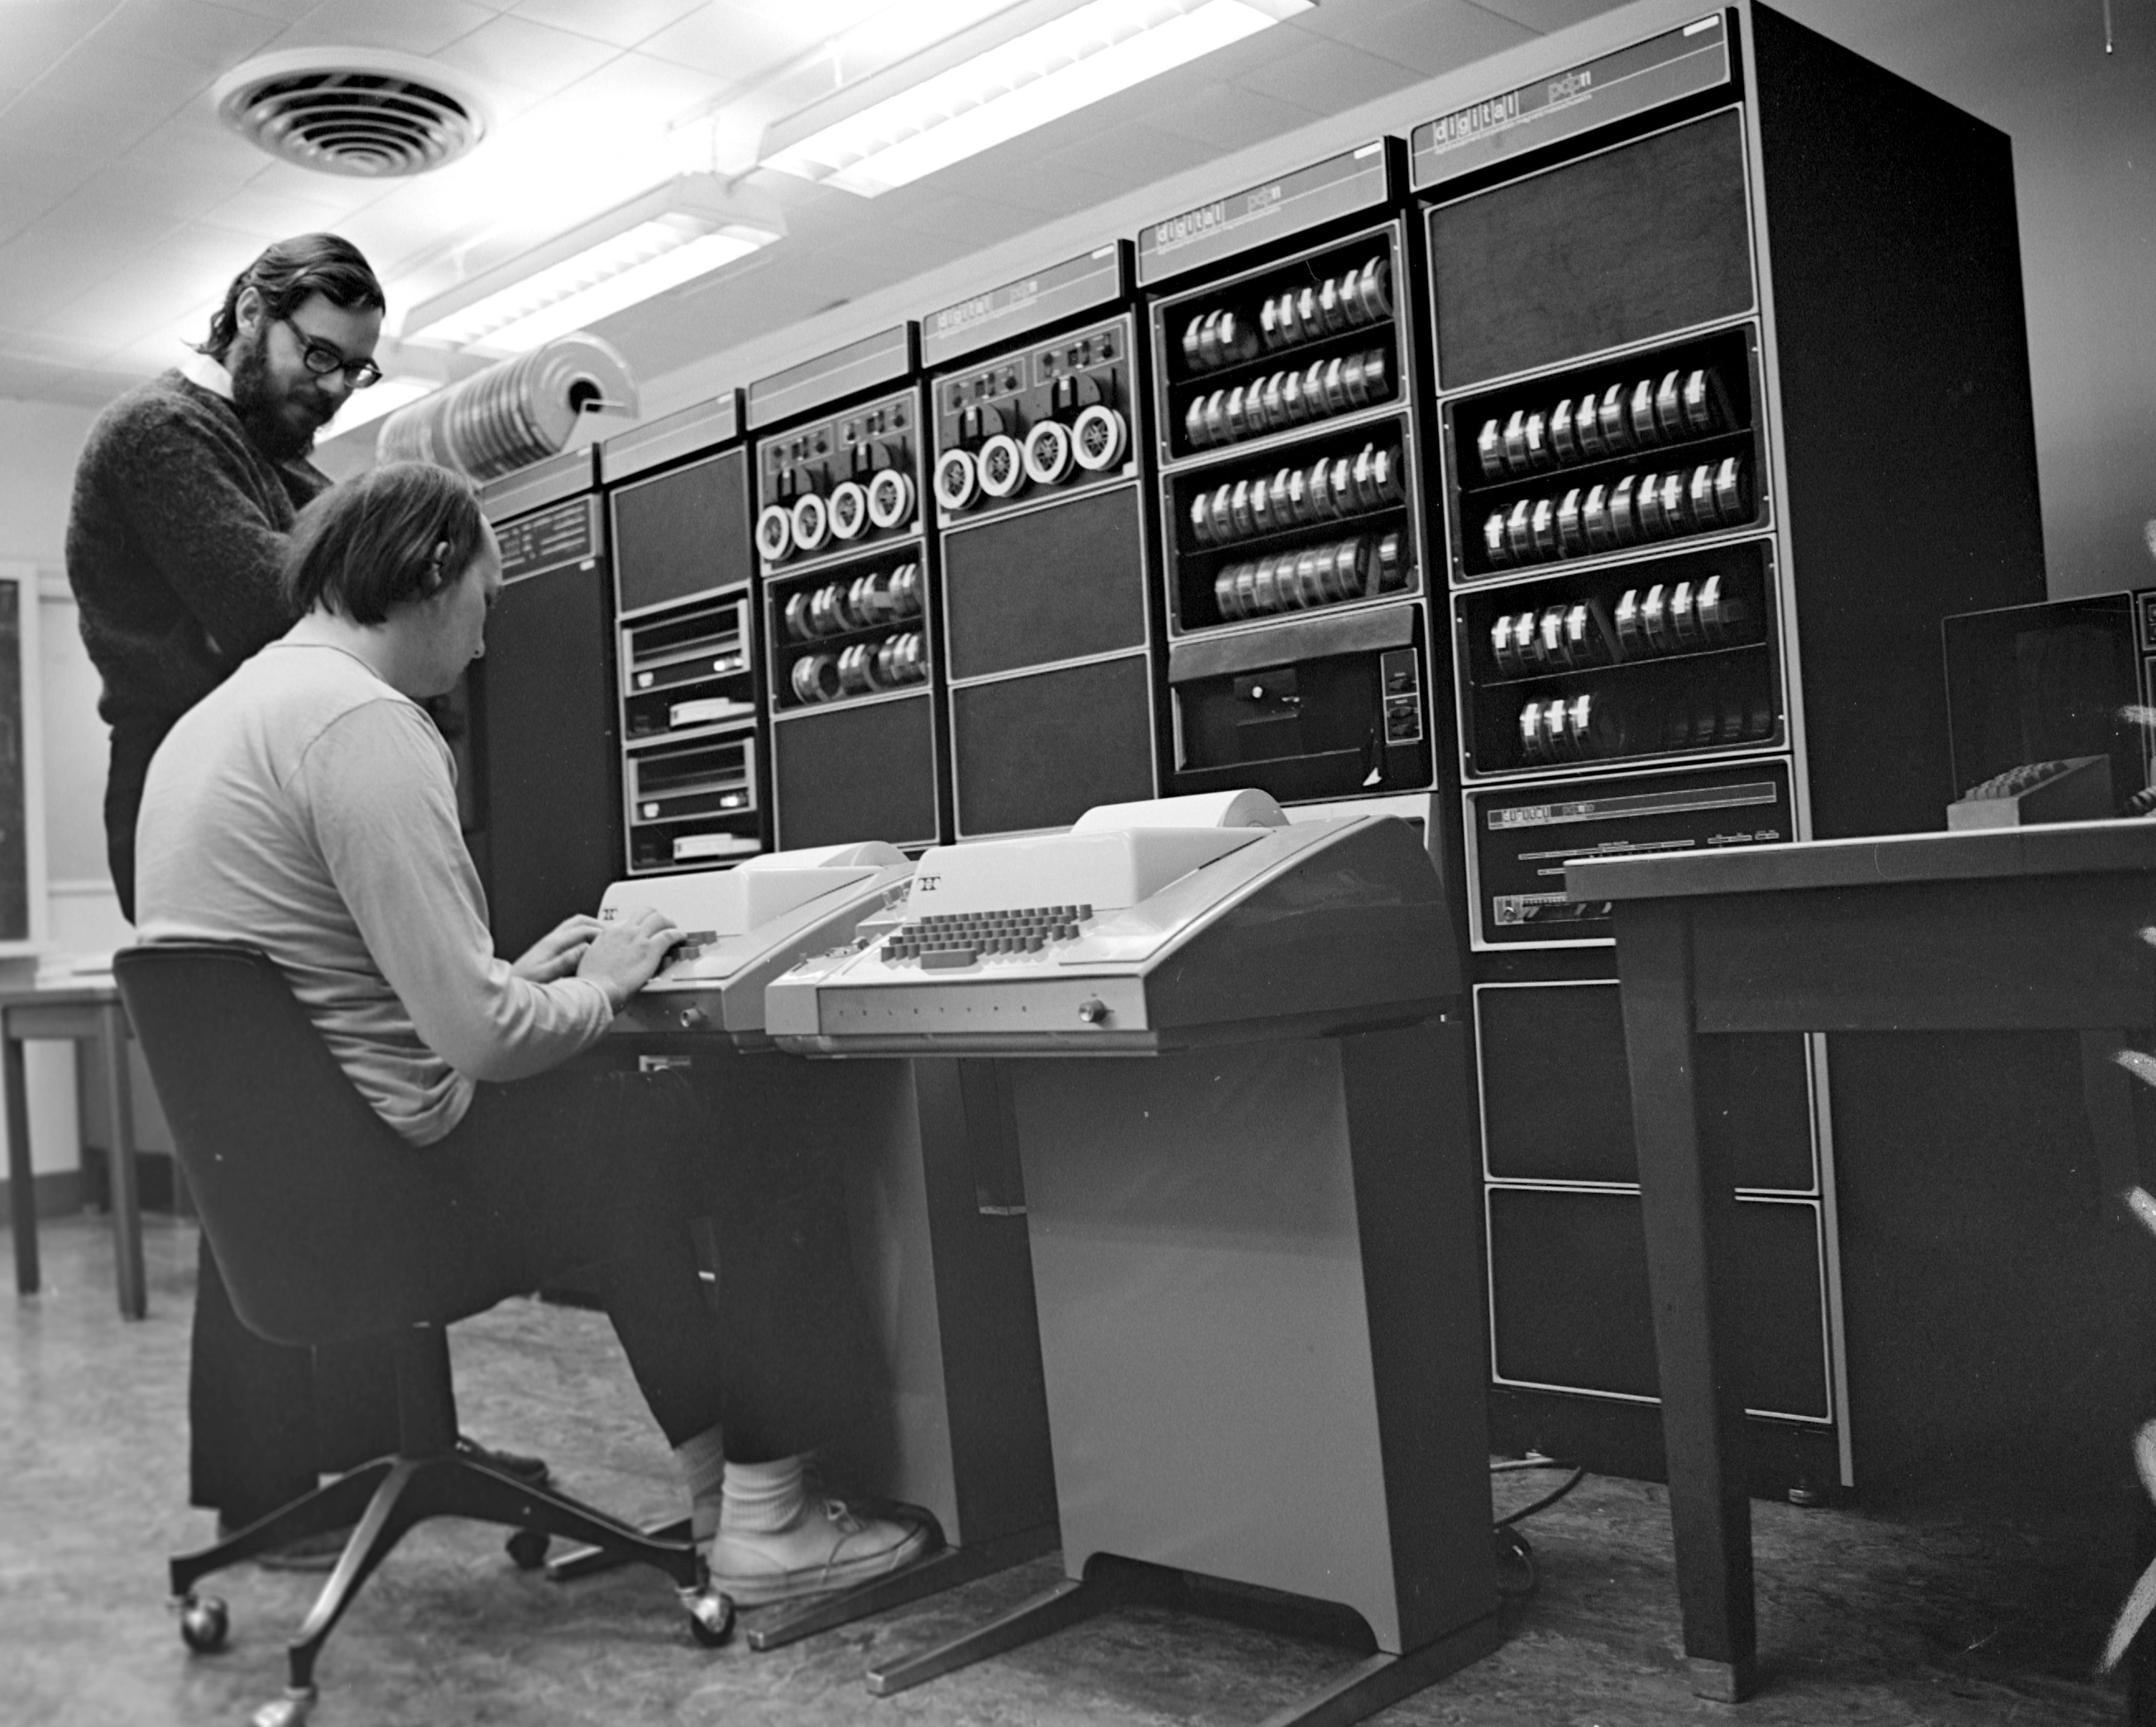 Ken Thompson sitting and Dennis Ritchie at PDP-11